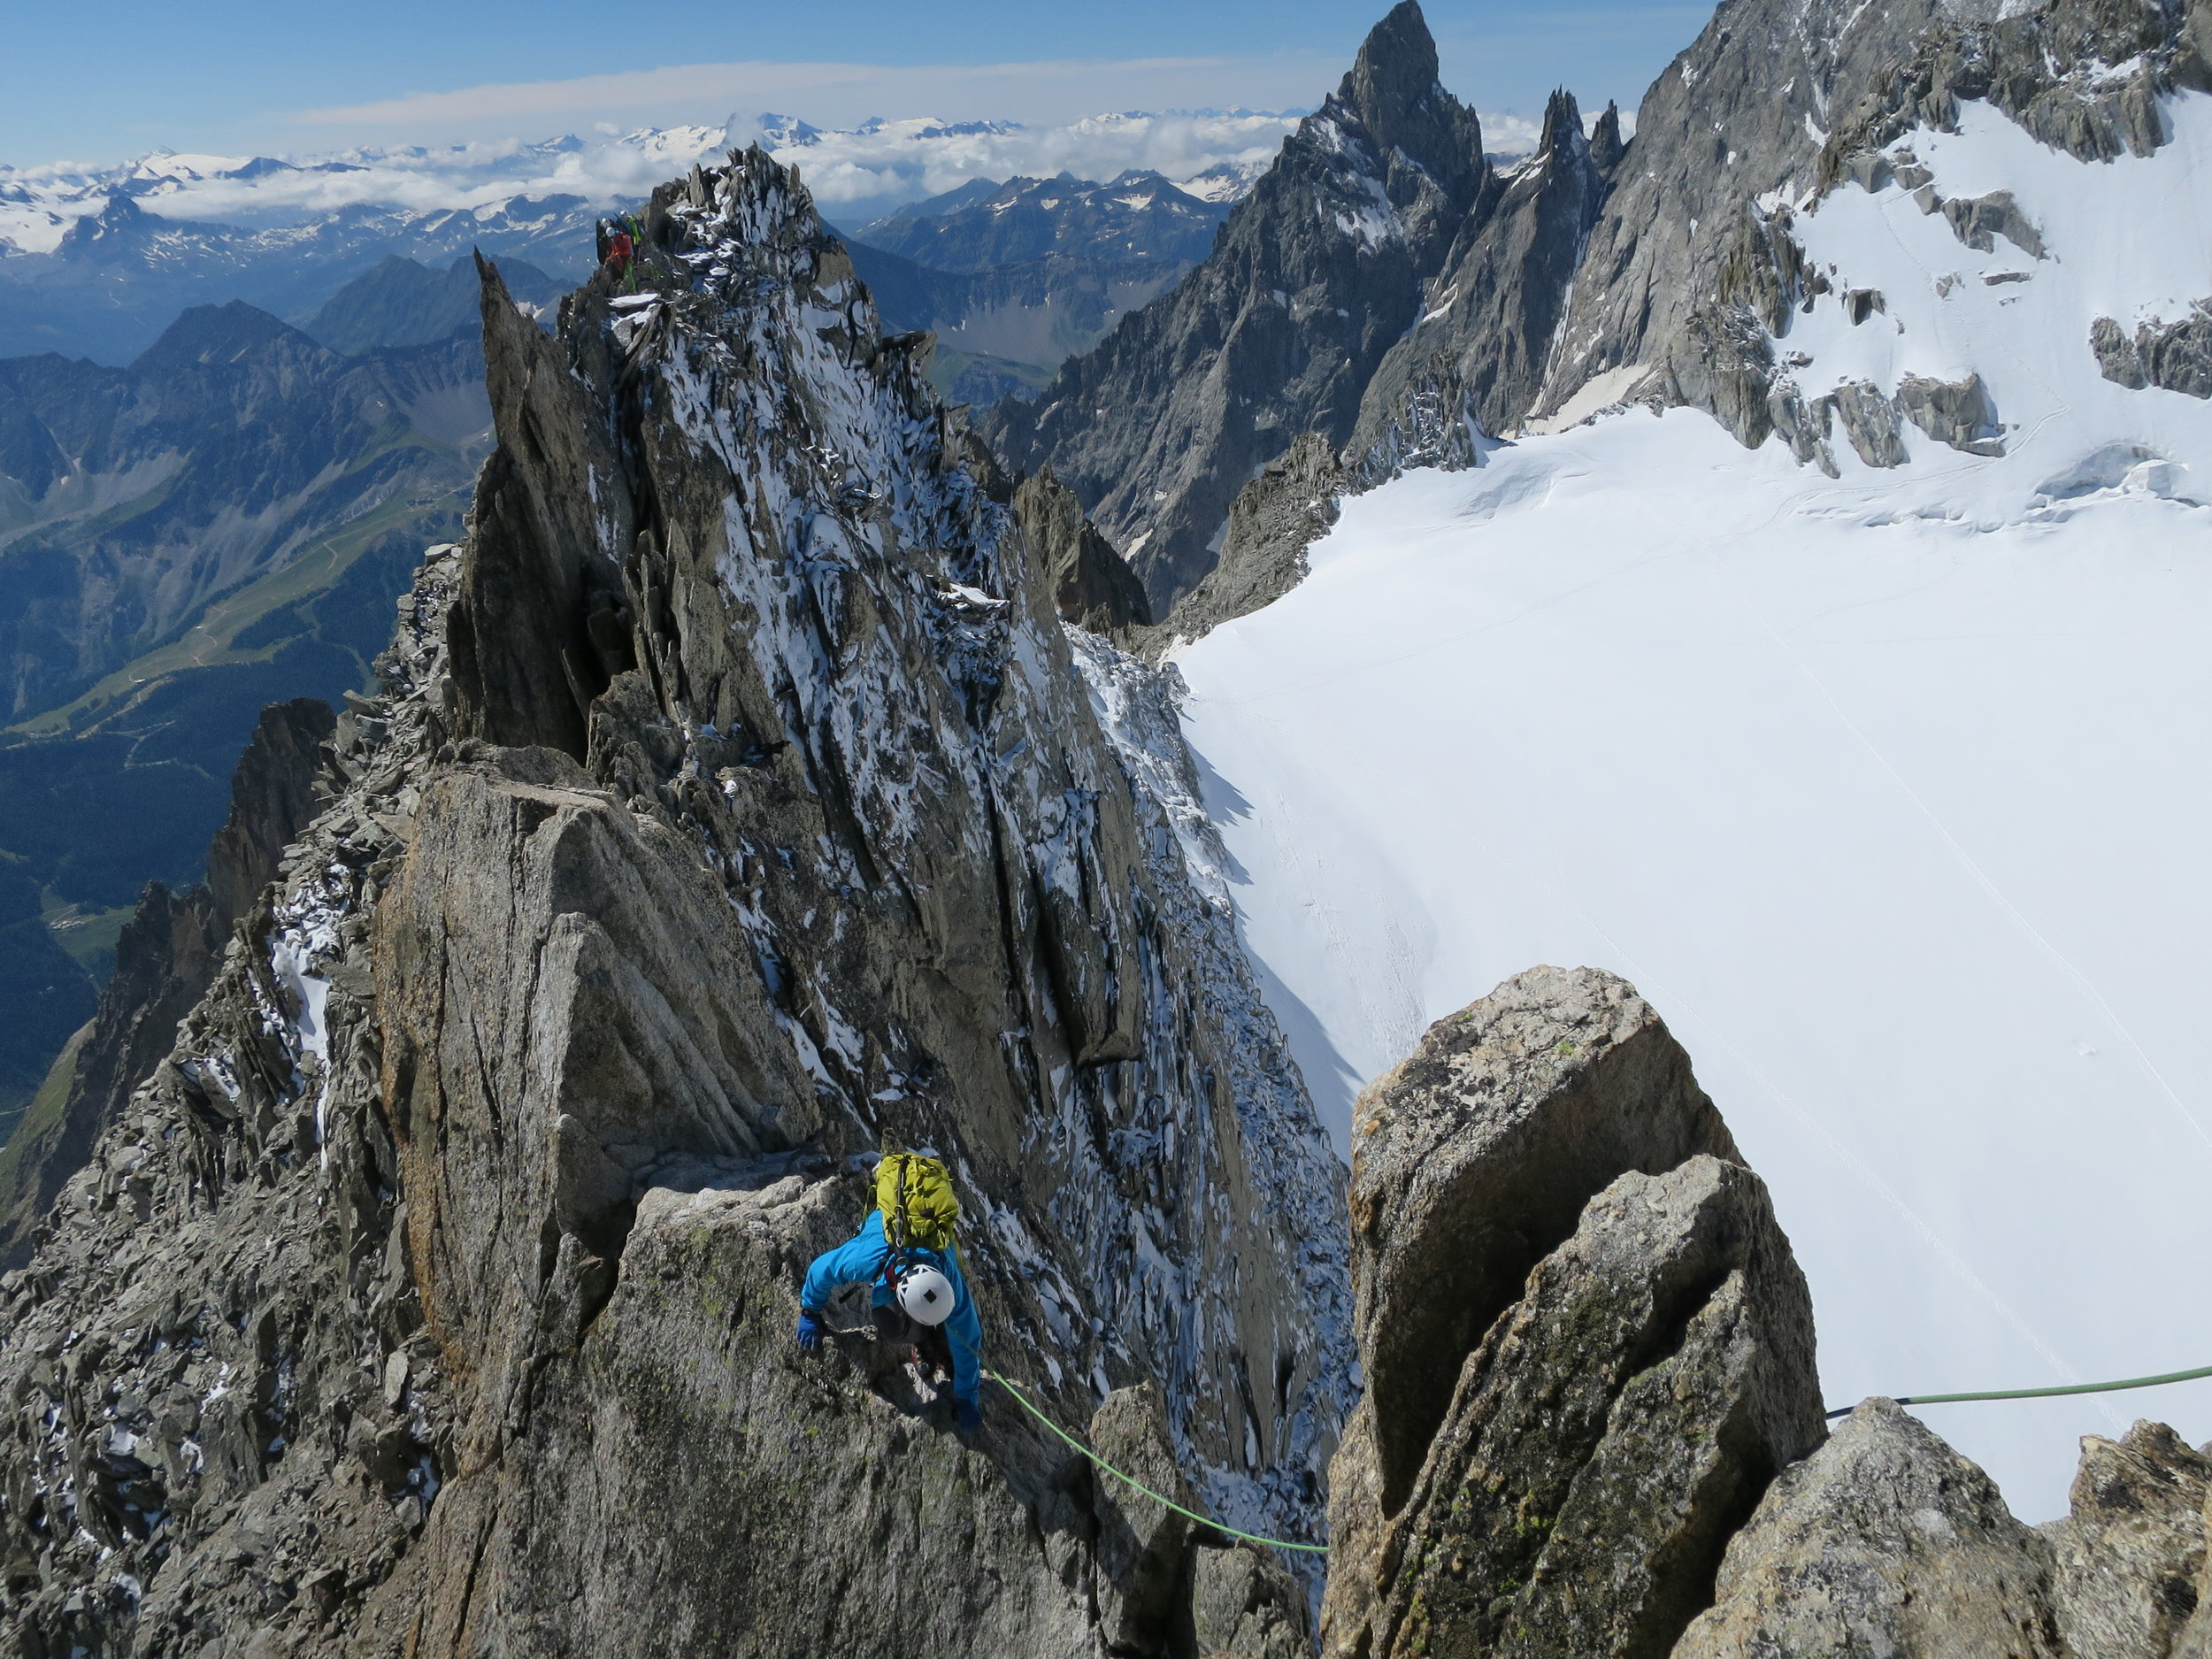 Walking the line on the Aiguilles d'Entreves Traverse on the French/Italian border